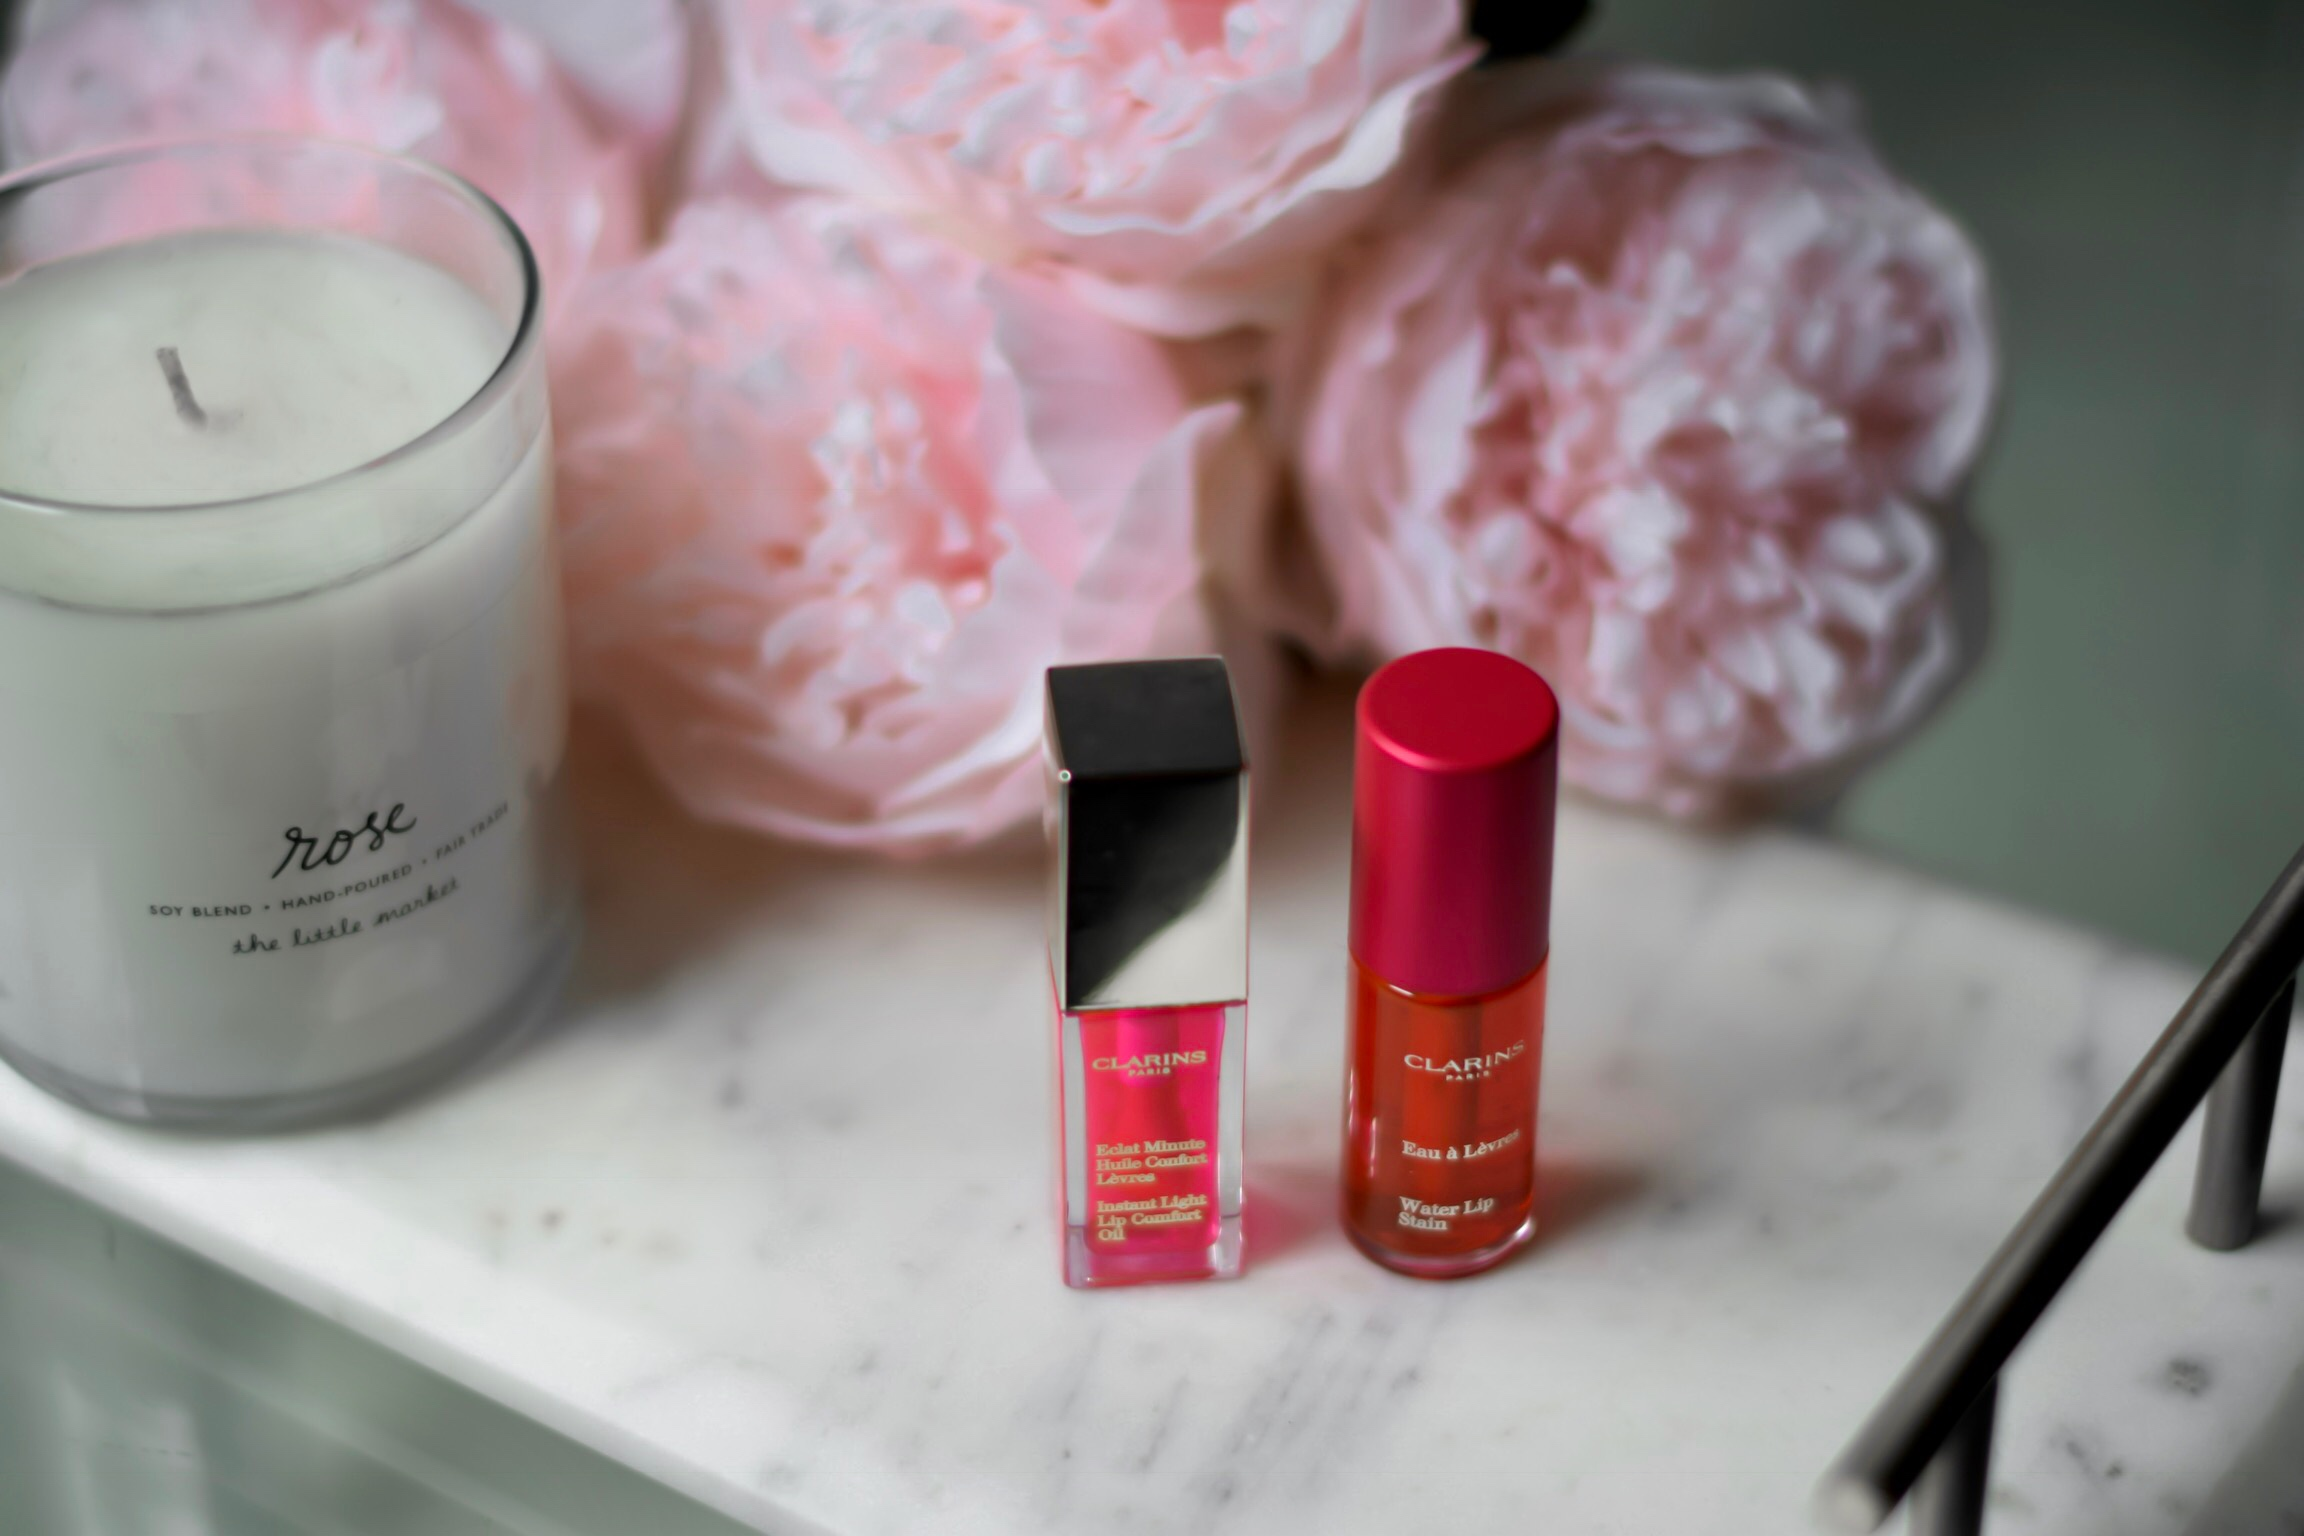 #TeamSassy vs #TeamSweet Clarins Esther Santer Fashion Blog NYC Street Style Blogger Outfit OOTD Trendy Beauty Makeup Routine Lipstick Lip Gloss Flatlay Instant Light Lip Comfort Oil Water Lip Stain Bright Pink Long Lasting Color Pretty Shop Girl.jpg